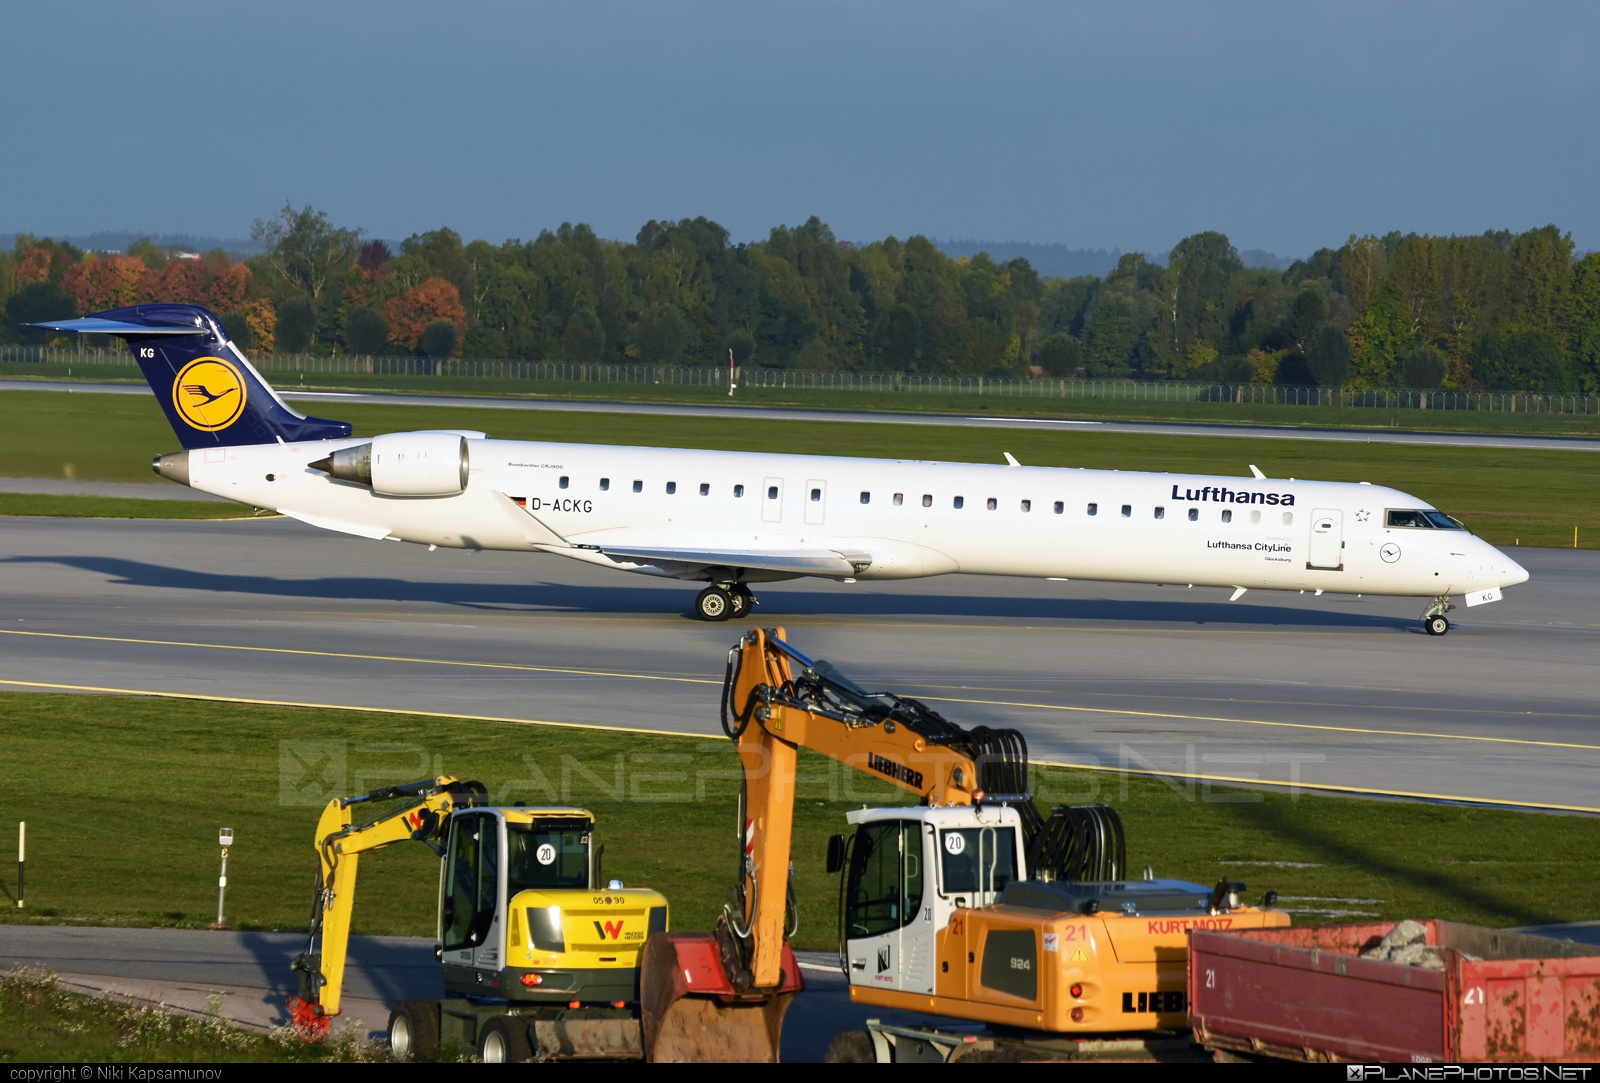 Bombardier CRJ900LR - D-ACKG operated by Lufthansa CityLine #bombardier #crj900 #crj900lr #lufthansa #lufthansacityline